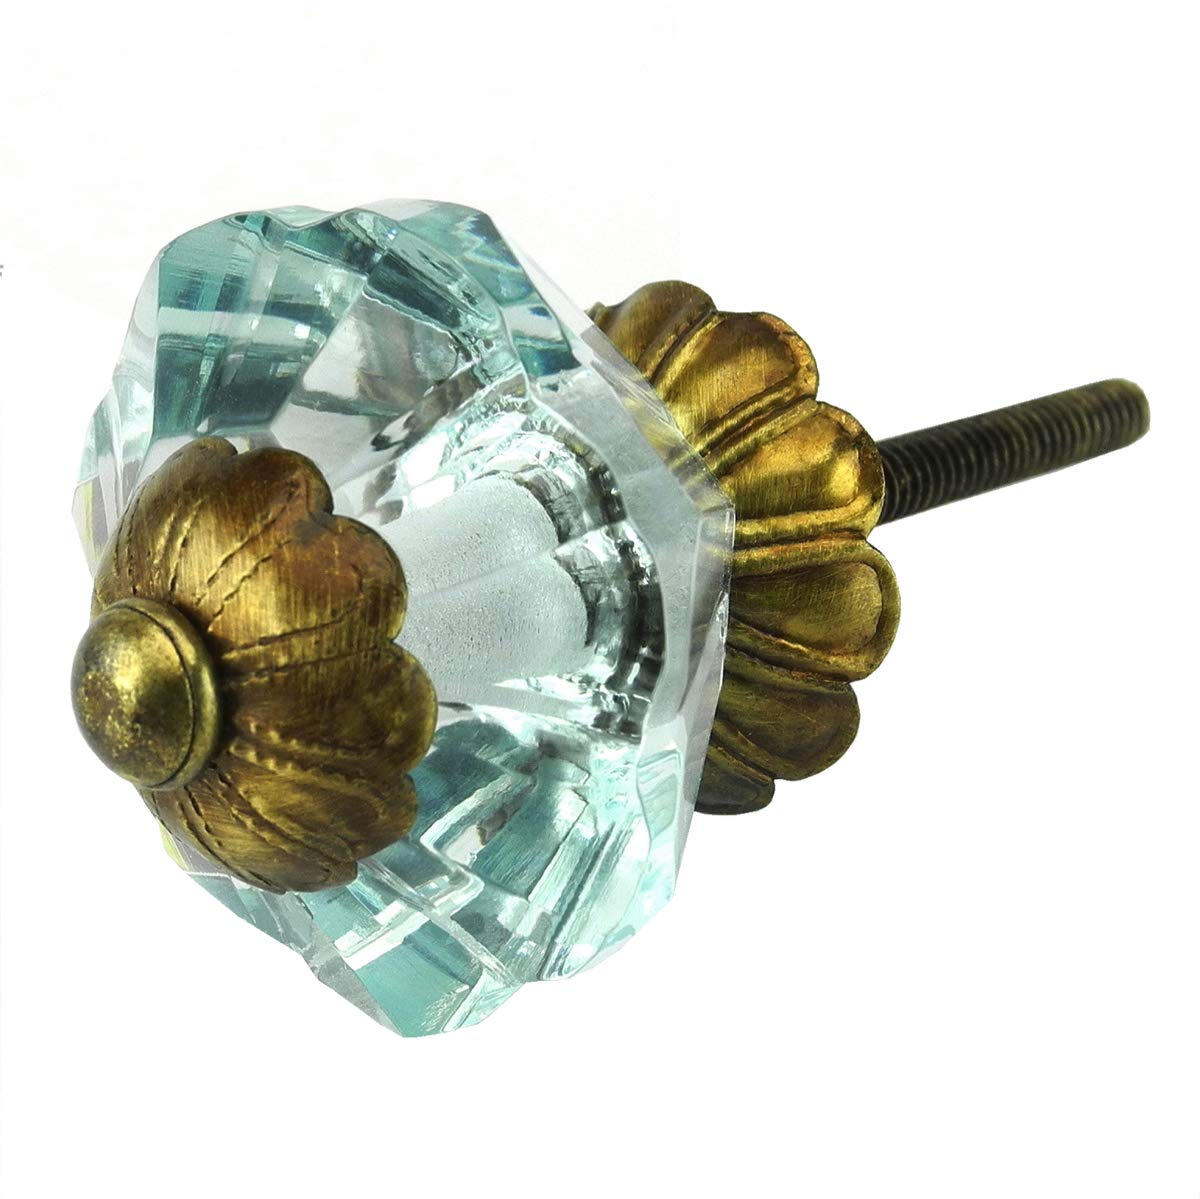 Arctic Blue Glass Cabinet Knobs, Dresser Drawer & Handles Set/2pc ~ K187FF Art Deco Glass Knobs w/Antique Brass Florentine Hardware for Armoire, Kitchen Cabinets, Cupboards, and Second Hand Furniture